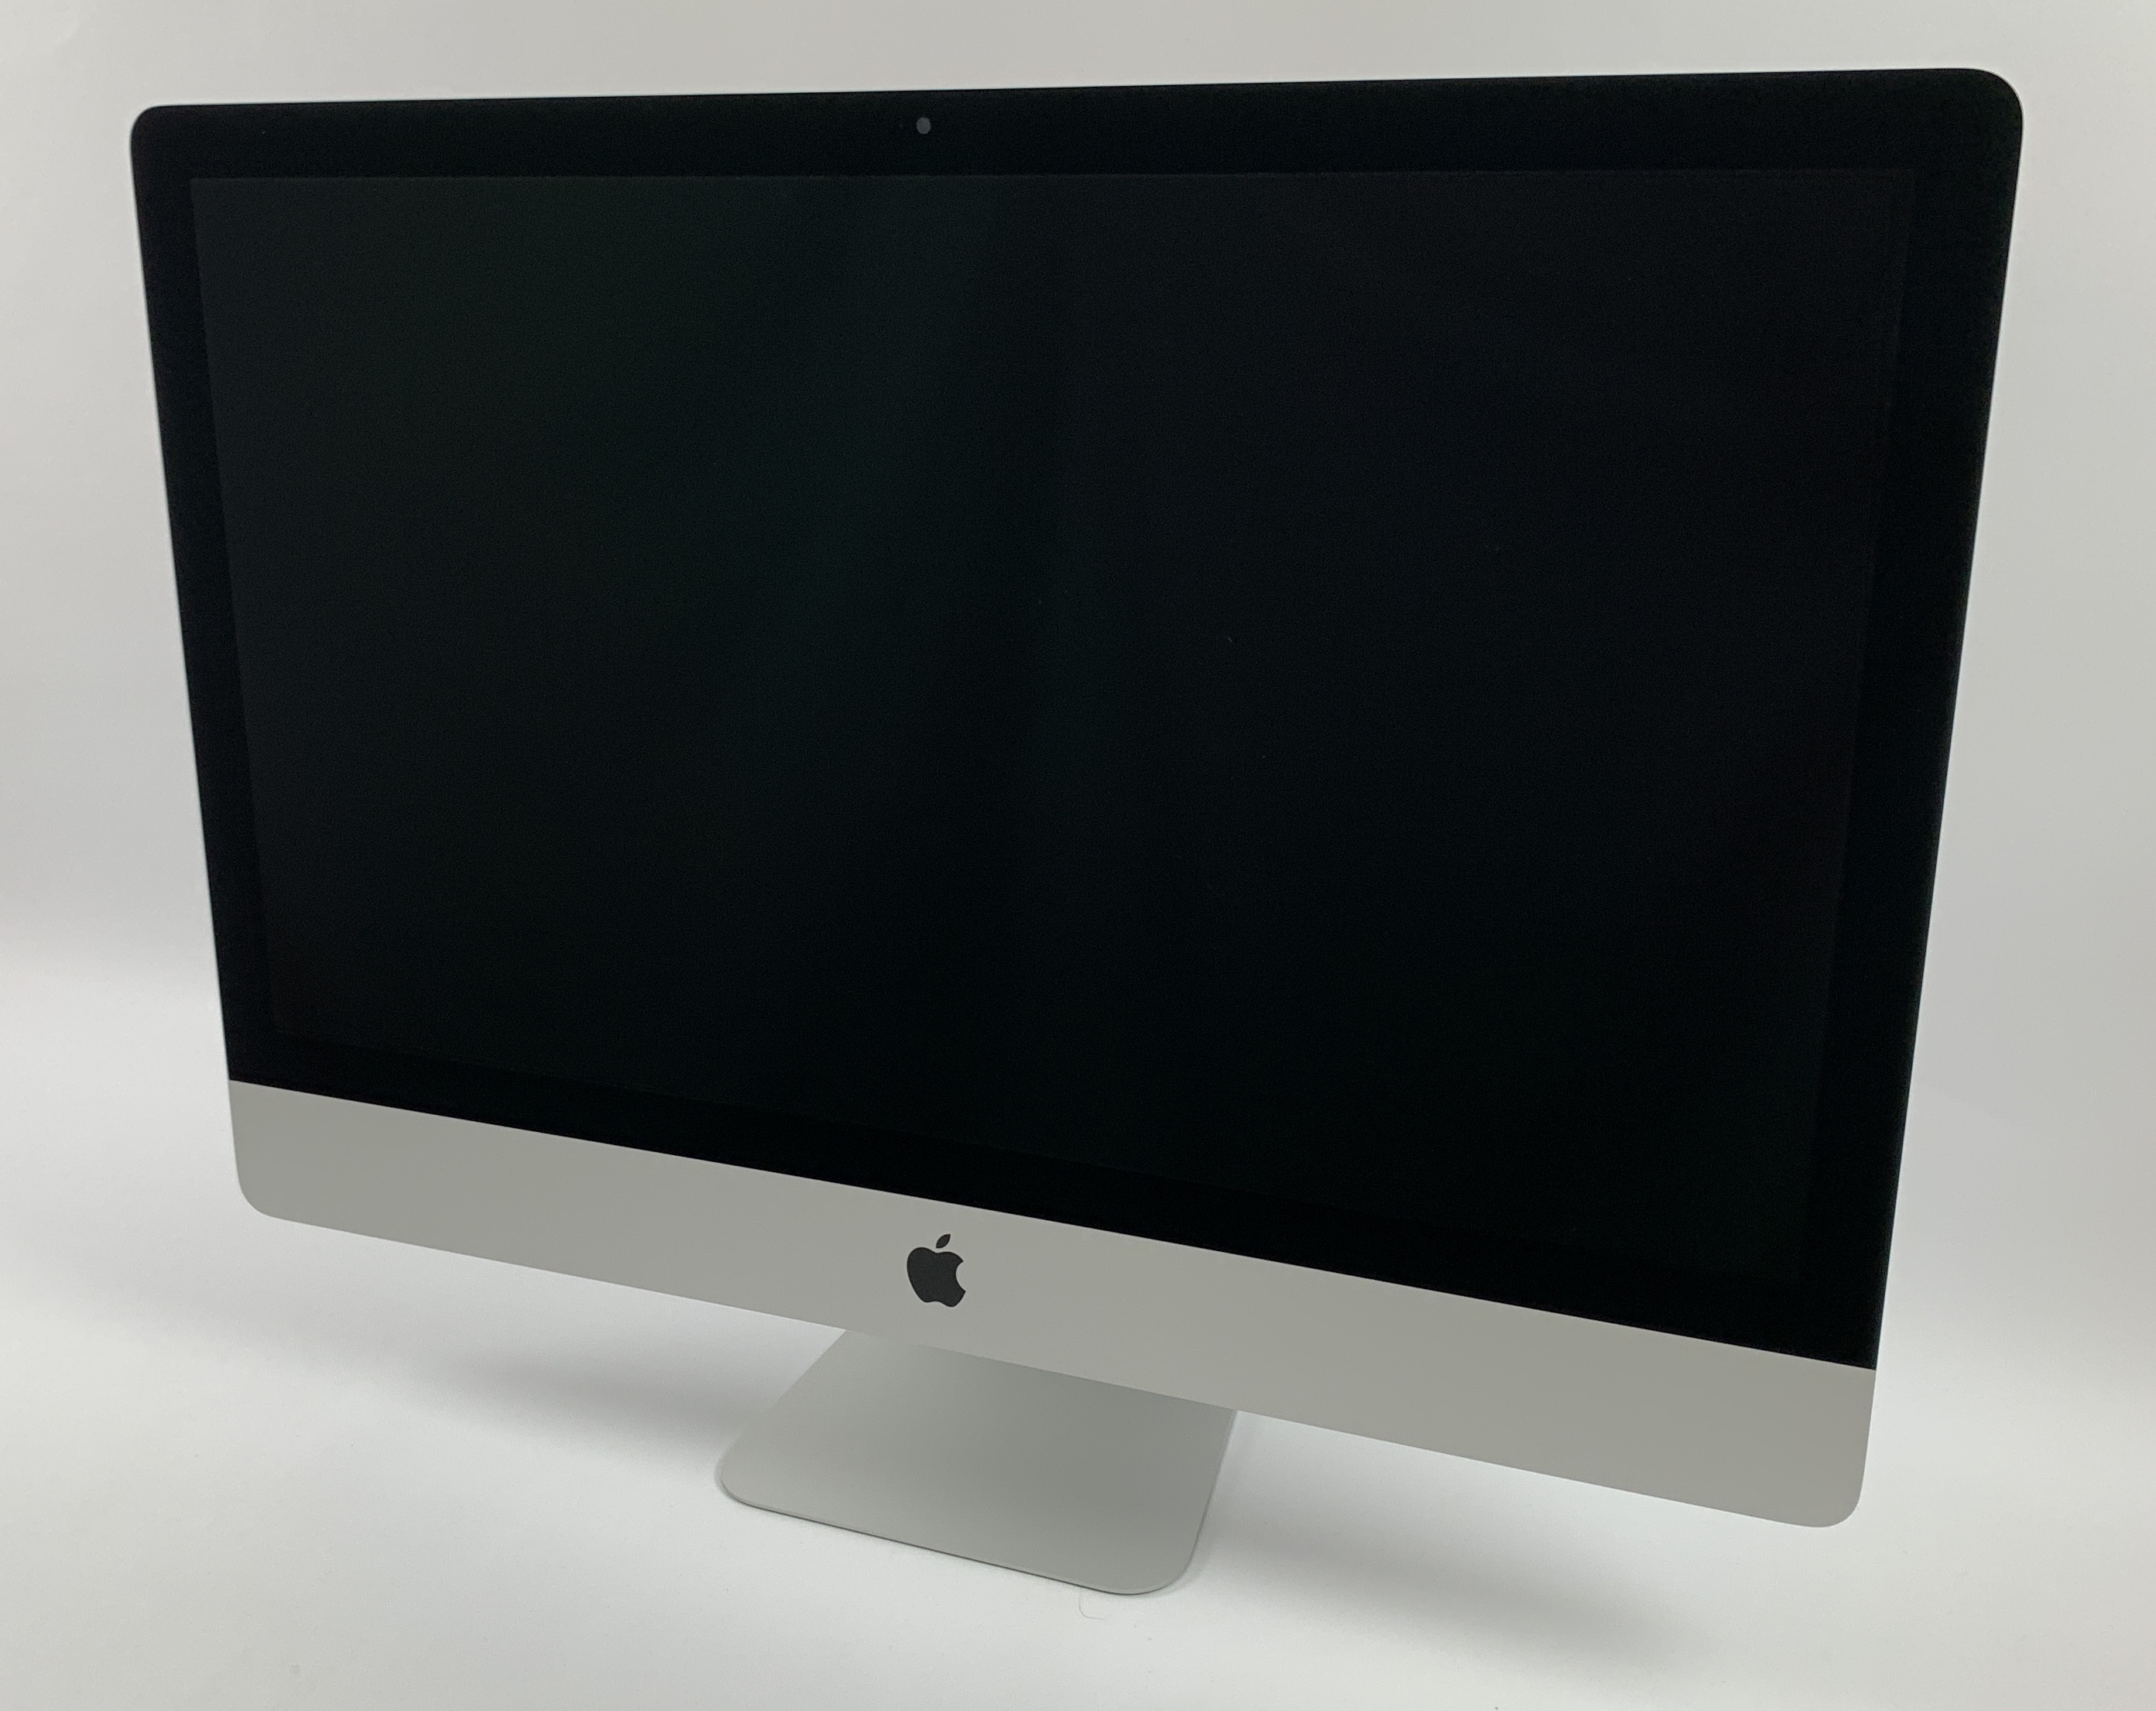 "iMac 27"" Retina 5K Early 2019 (Intel 6-Core i5 3.7 GHz 32 GB RAM 2 TB SSD), Intel 6-Core i5 3.7 GHz, 32 GB RAM, 2 TB SSD (Third-party), image 1"